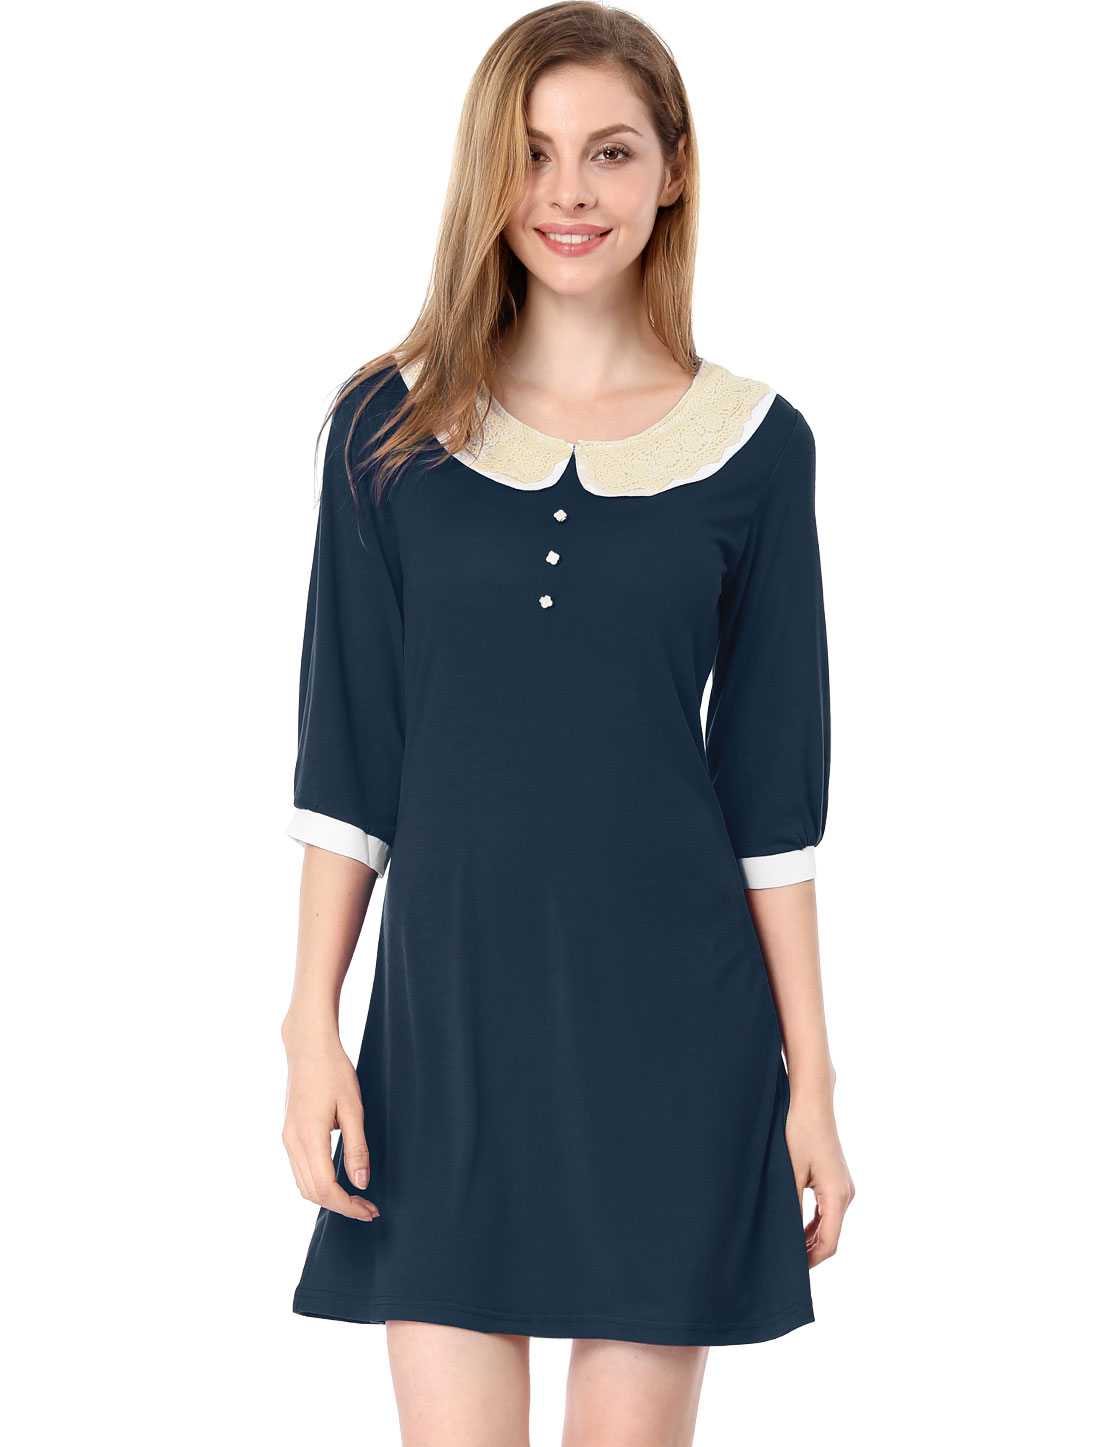 Woman Crochet Peter Pan Collar Elbow Sleeve Dark Blue Mini Dress S